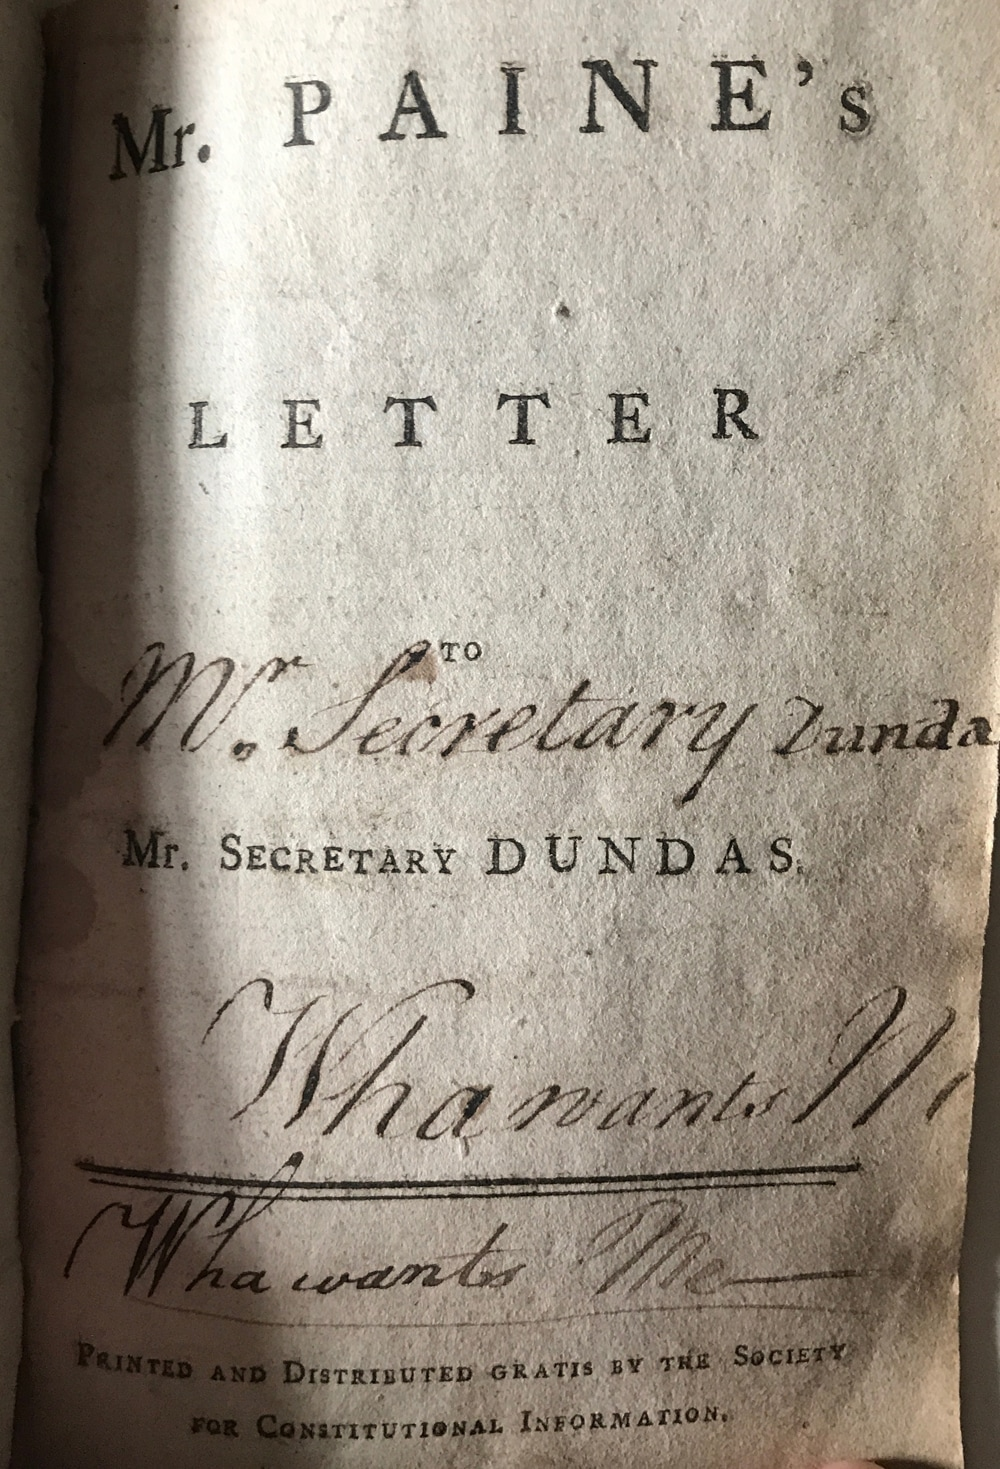 Mr Paine's letter to Mr. Secretary Dundas- by Thomas Paine, 1792